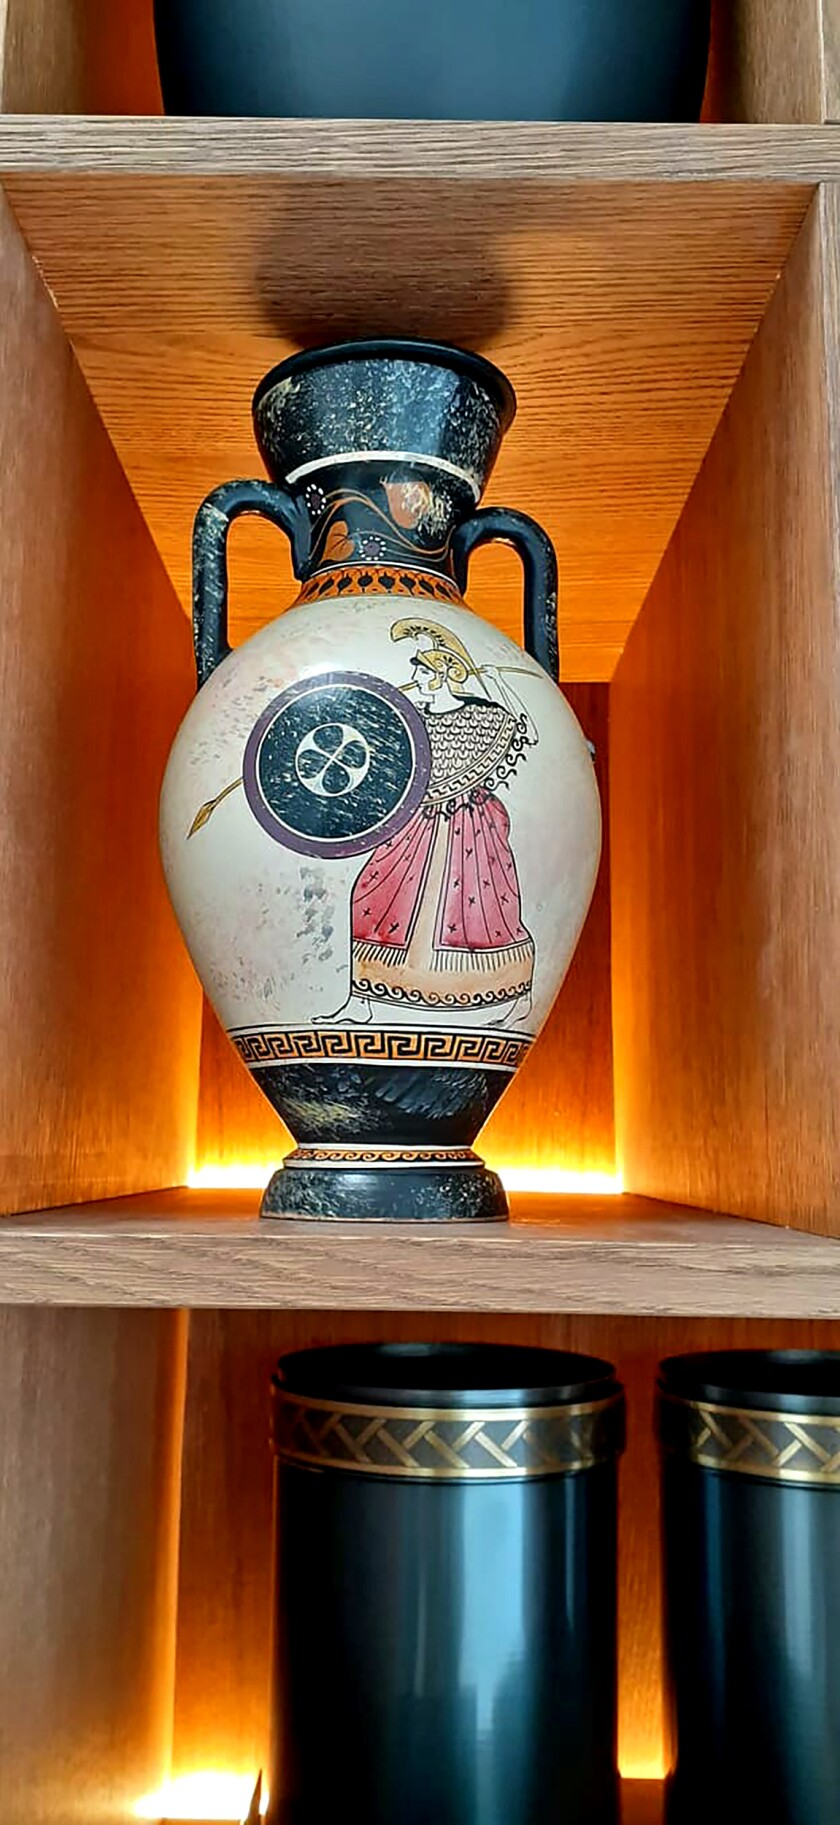 Ritsona Crematorium offers funerary urns, some modeled on ancient Greek designs.